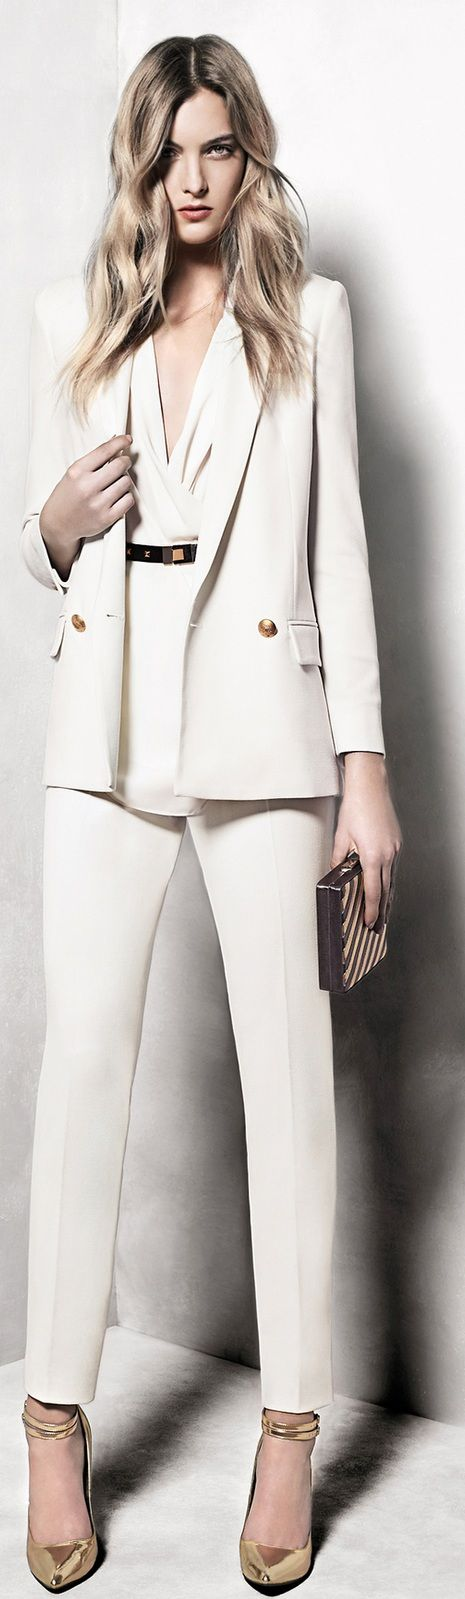 If I ever become a millionaire I will have all white suits like this. So gorgeous.